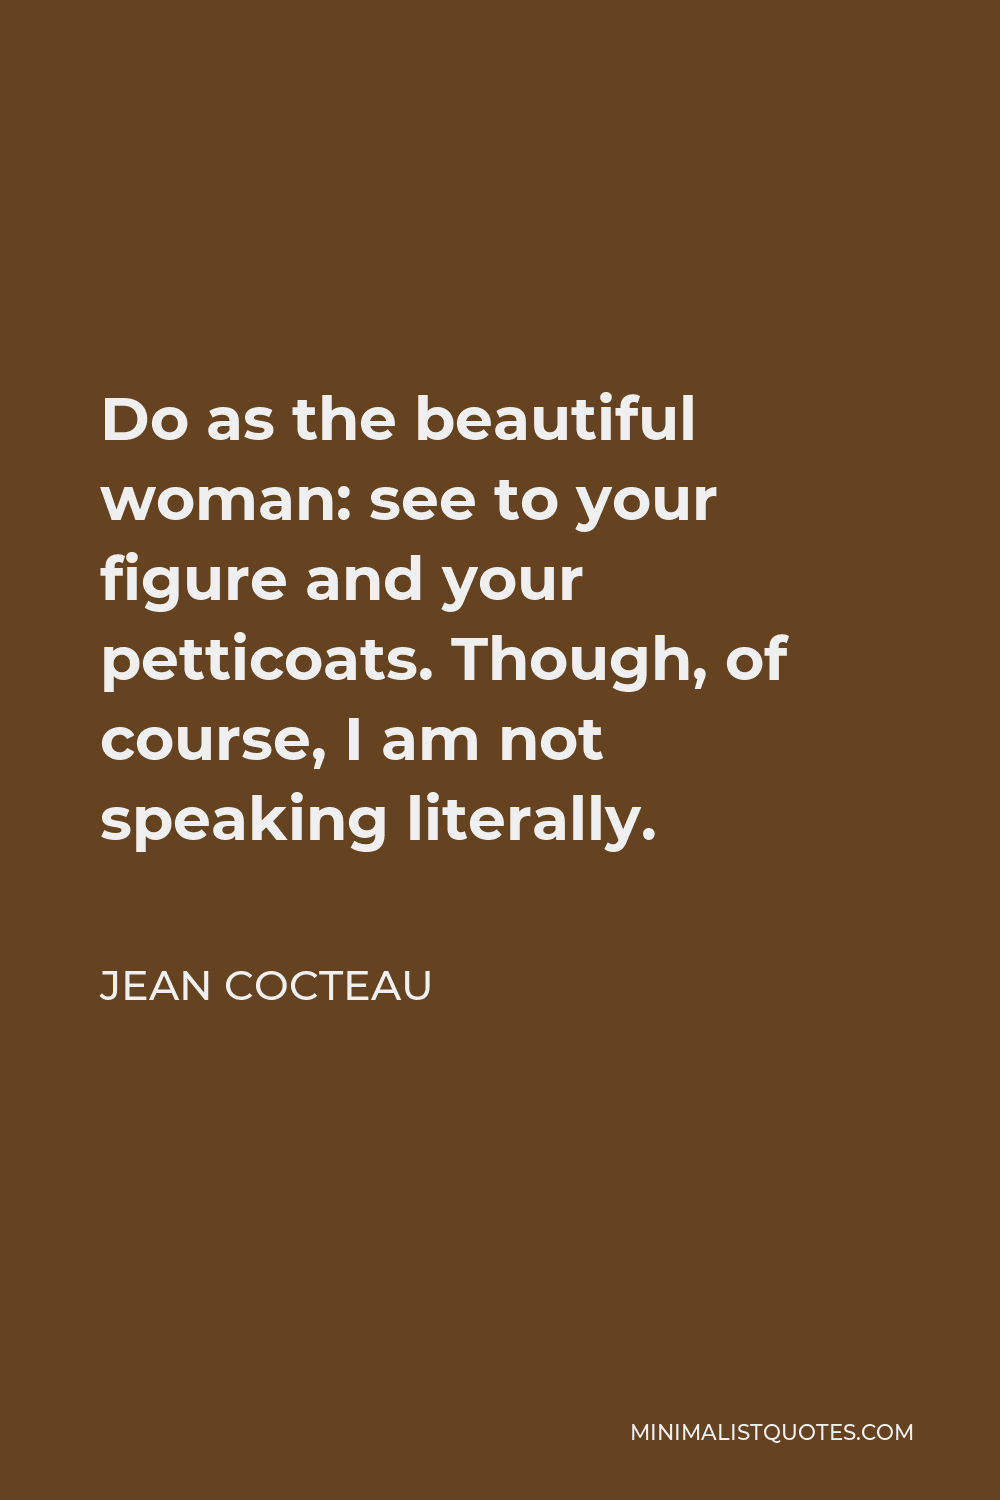 Jean Cocteau Quote - Do as the beautiful woman: see to your figure and your petticoats. Though, of course, I am not speaking literally.